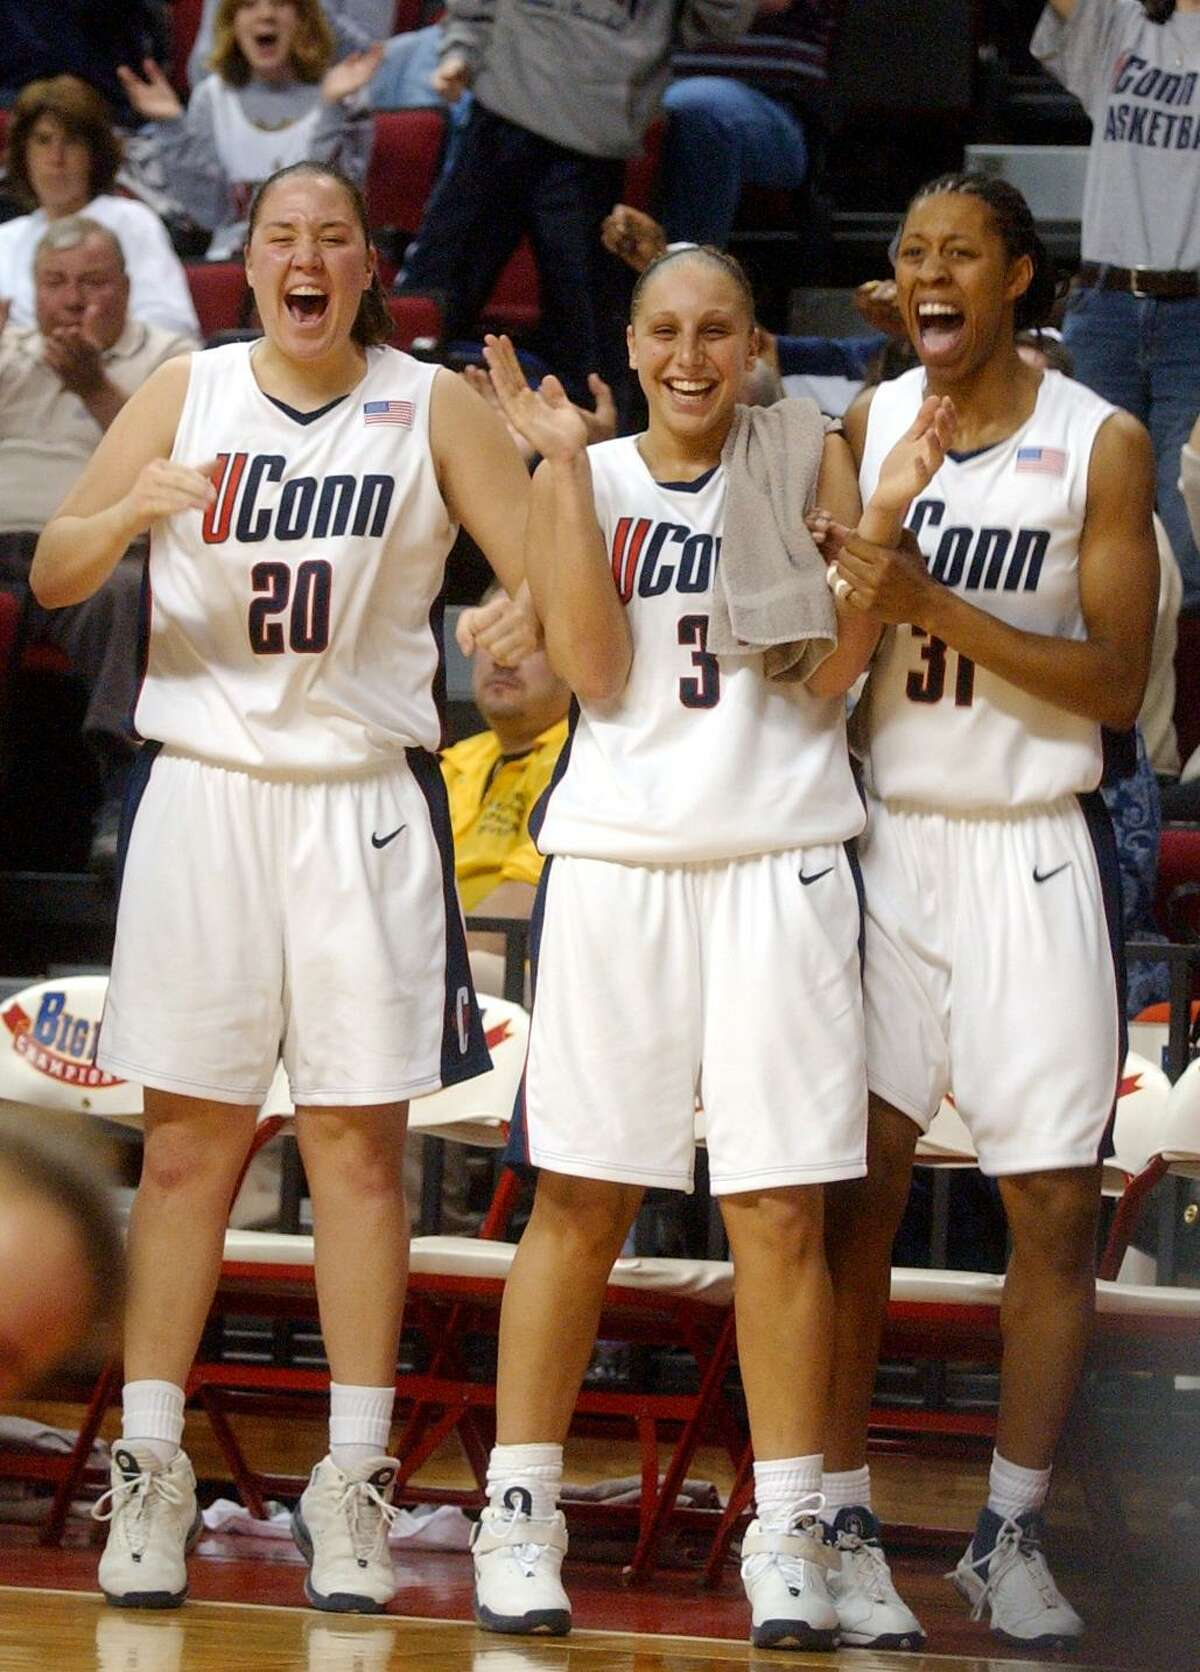 UConn's (20) Morgan Valley, (3) Diana Taurasi, and (31) Jessica Moore celebrates after Ashley Valley got fouled as she made the basket during the Big East quarterfinal against Seton Hall on March 9, 2003.